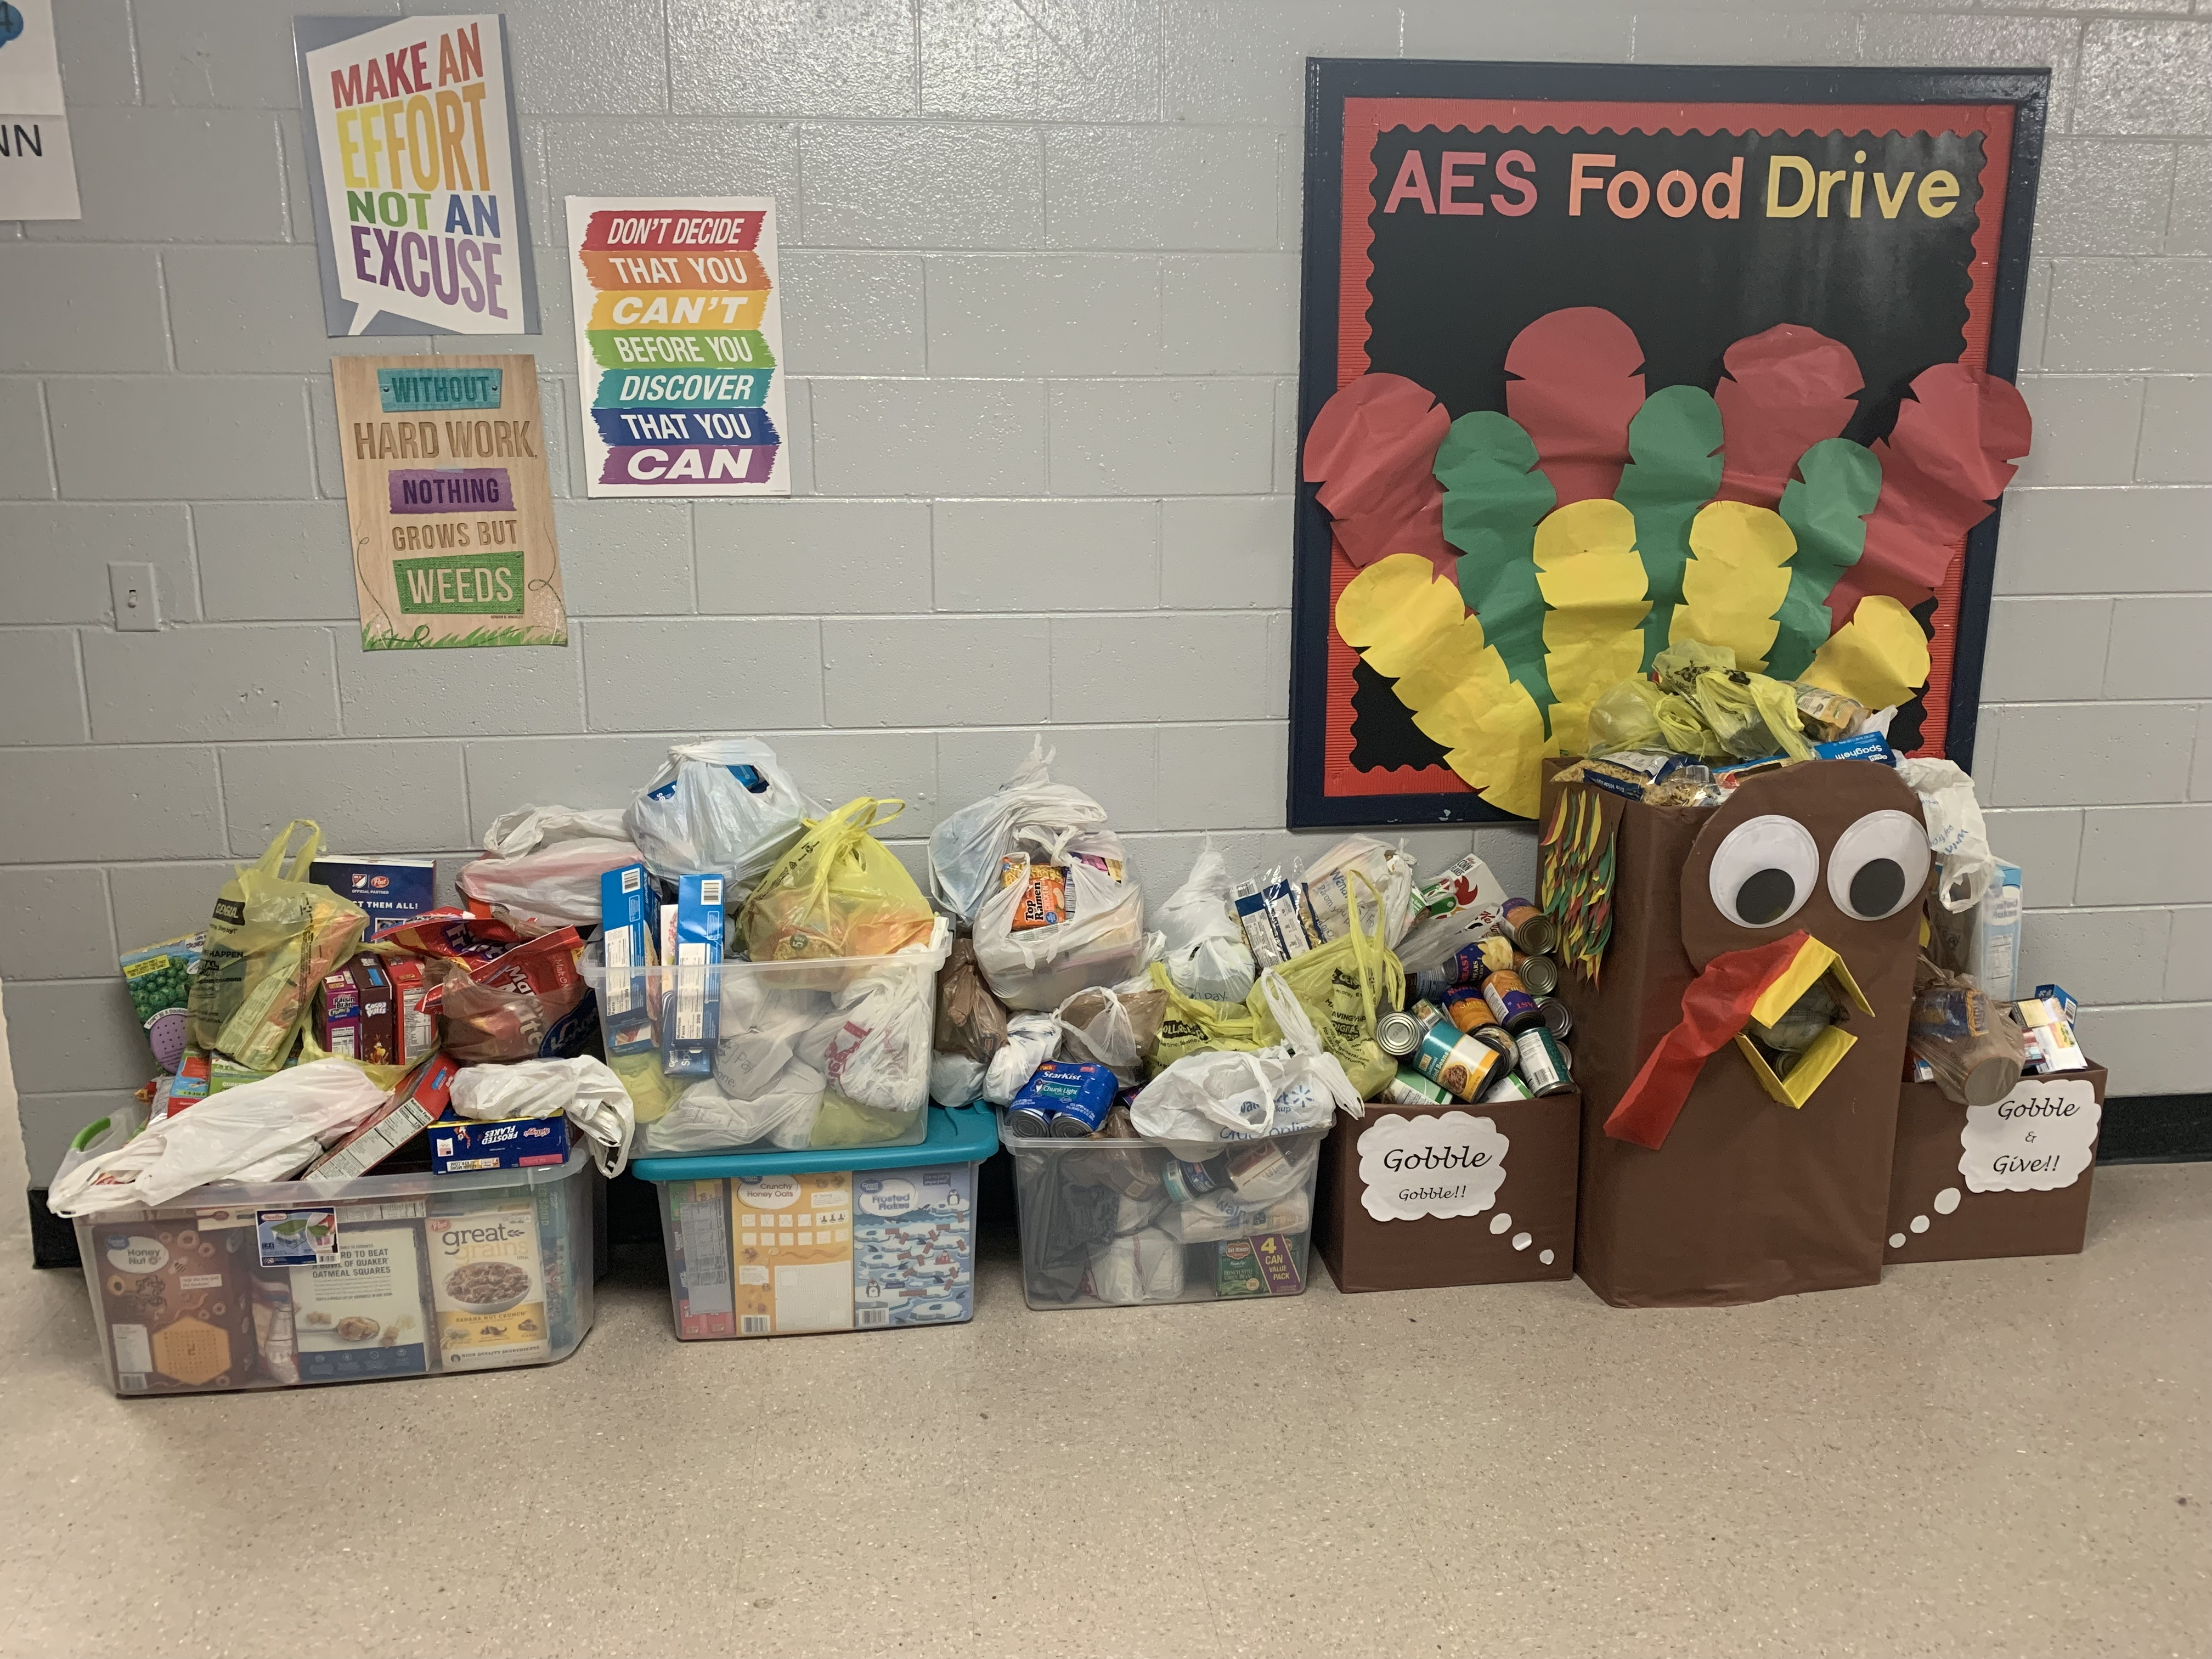 AES Food Drive